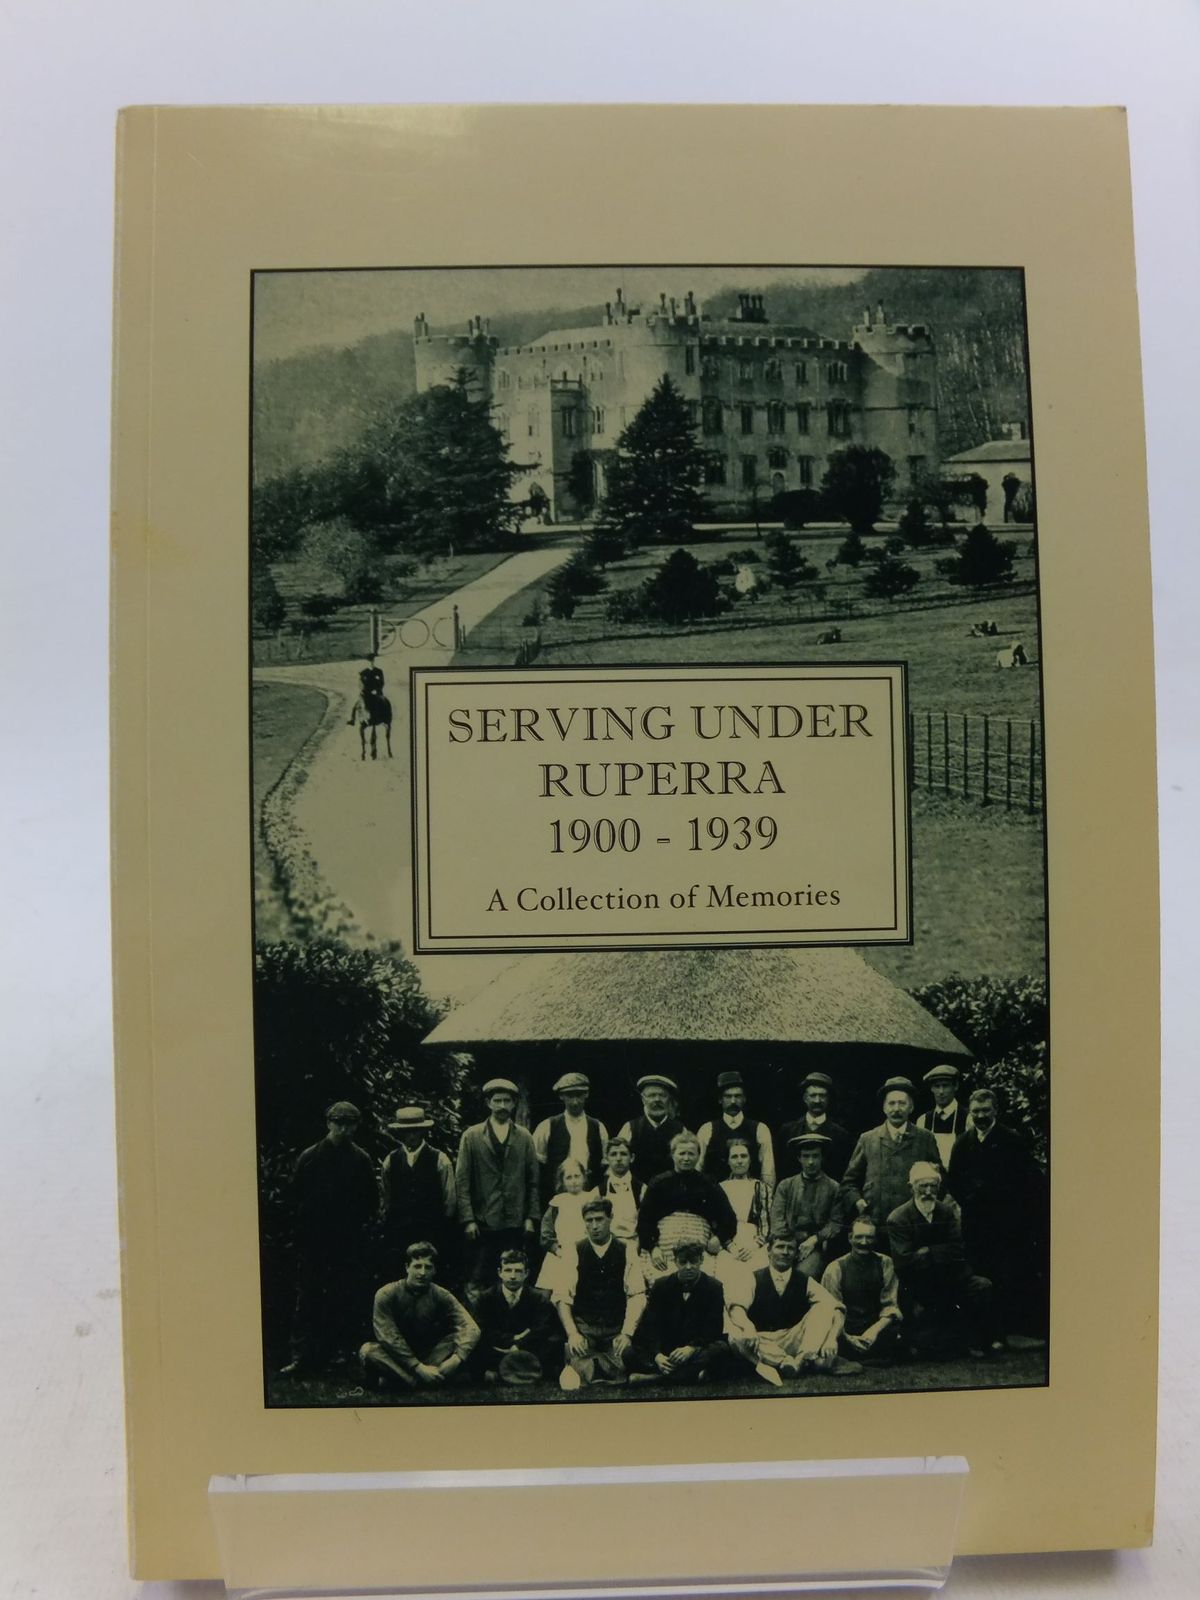 Photo of SERVING UNDER RUPERRA 1900 - 1939 A COLLECTION OF MEMORIES written by Moseley, Pat et al,  published by Clarke Printing (STOCK CODE: 2113625)  for sale by Stella & Rose's Books